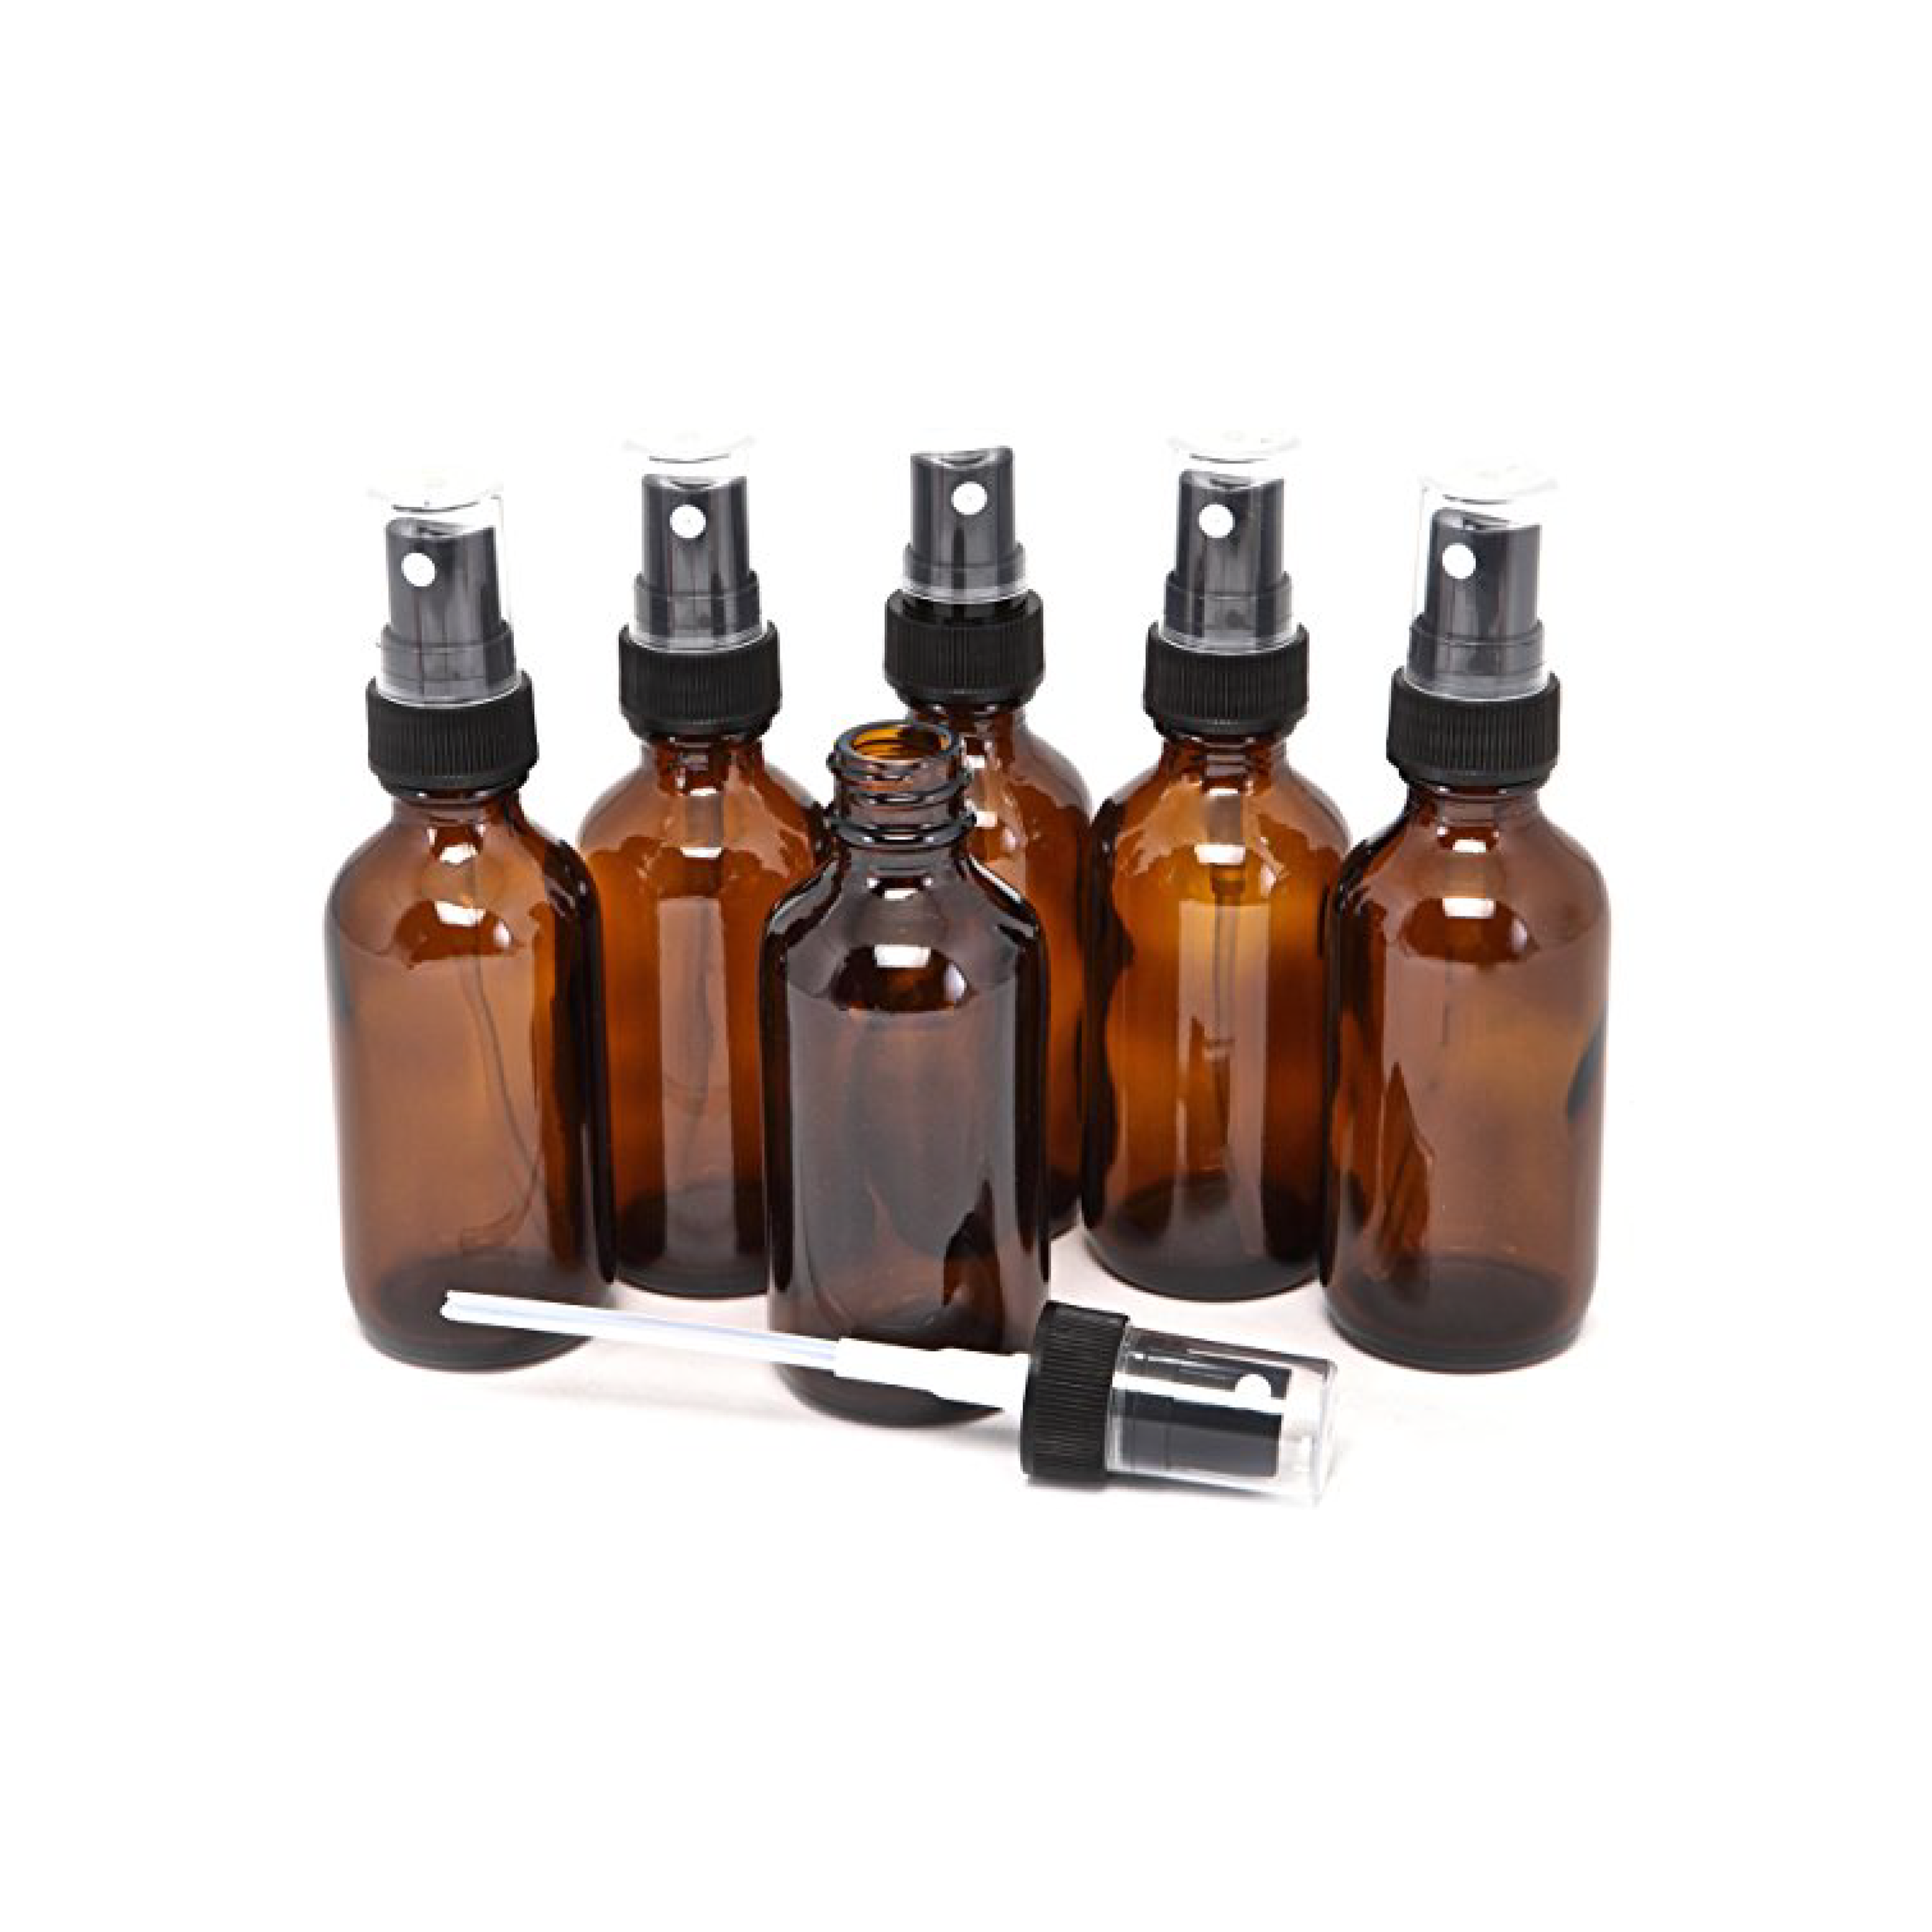 I use these small glass spray bottles for my homemade mosquito spray with tea tree oil but you could also use them for travel and other home things as well.